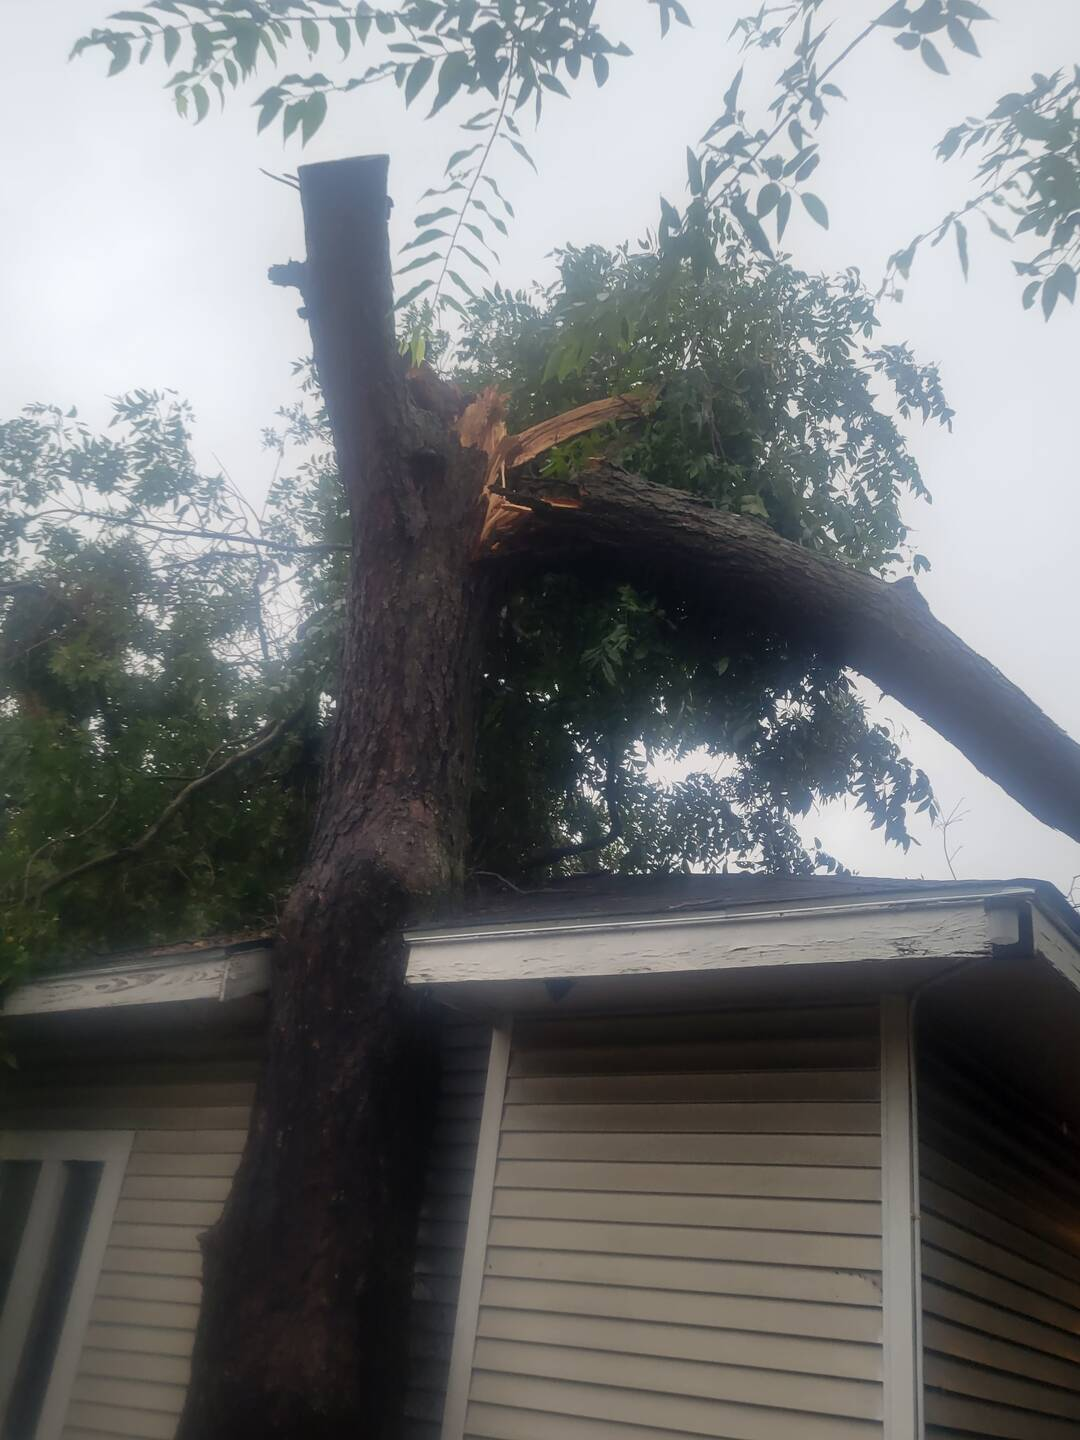 Storm damage to house